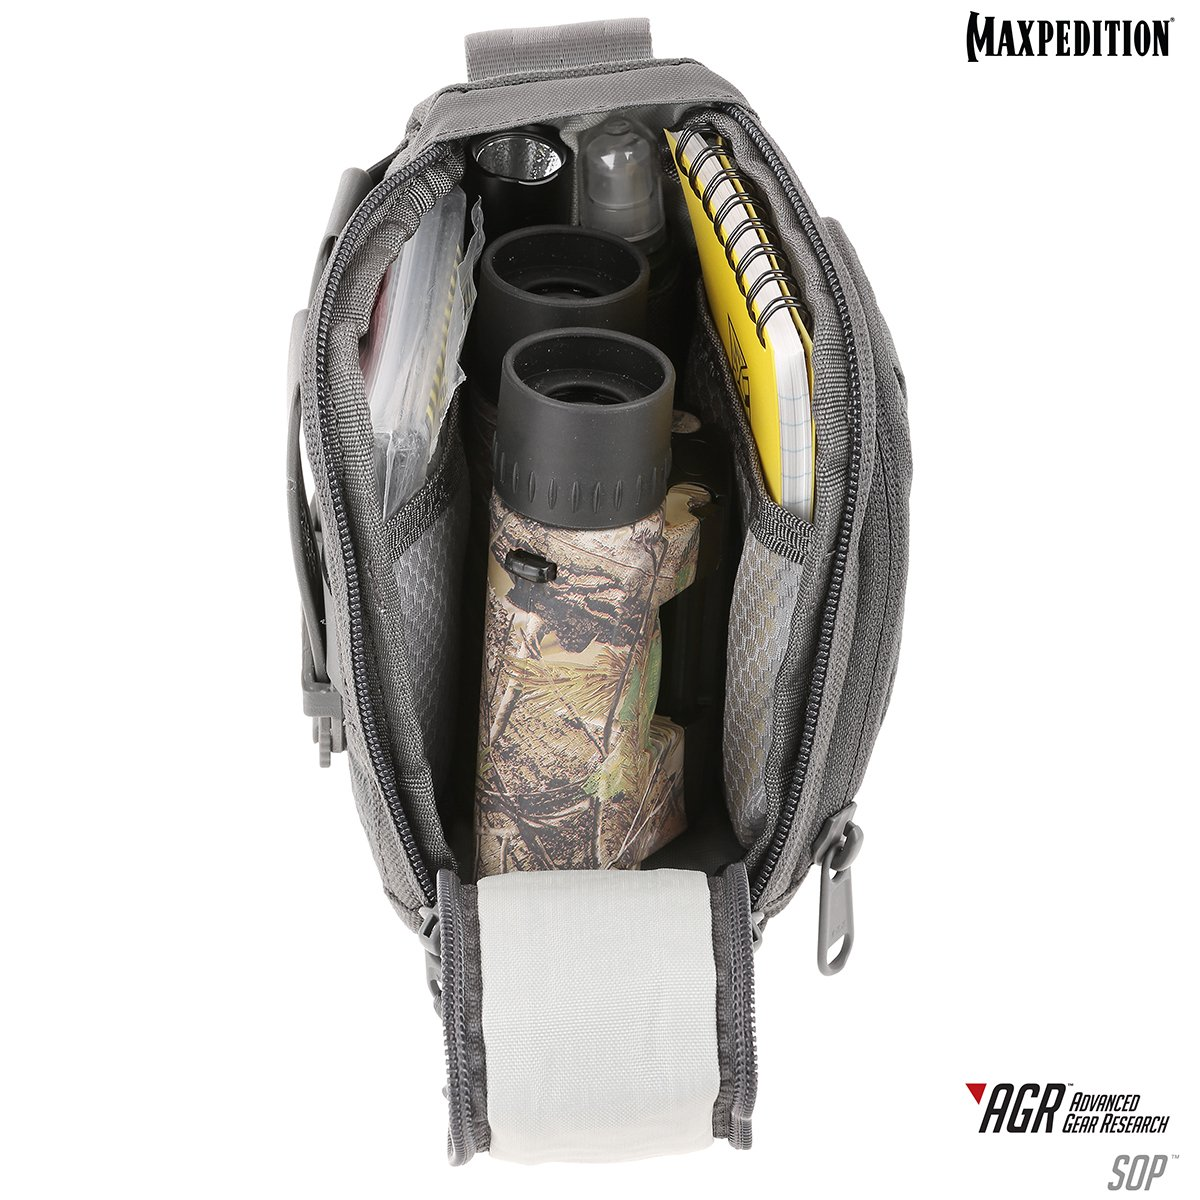 Maxpedition SOP Side Opening Pouch _ Gray